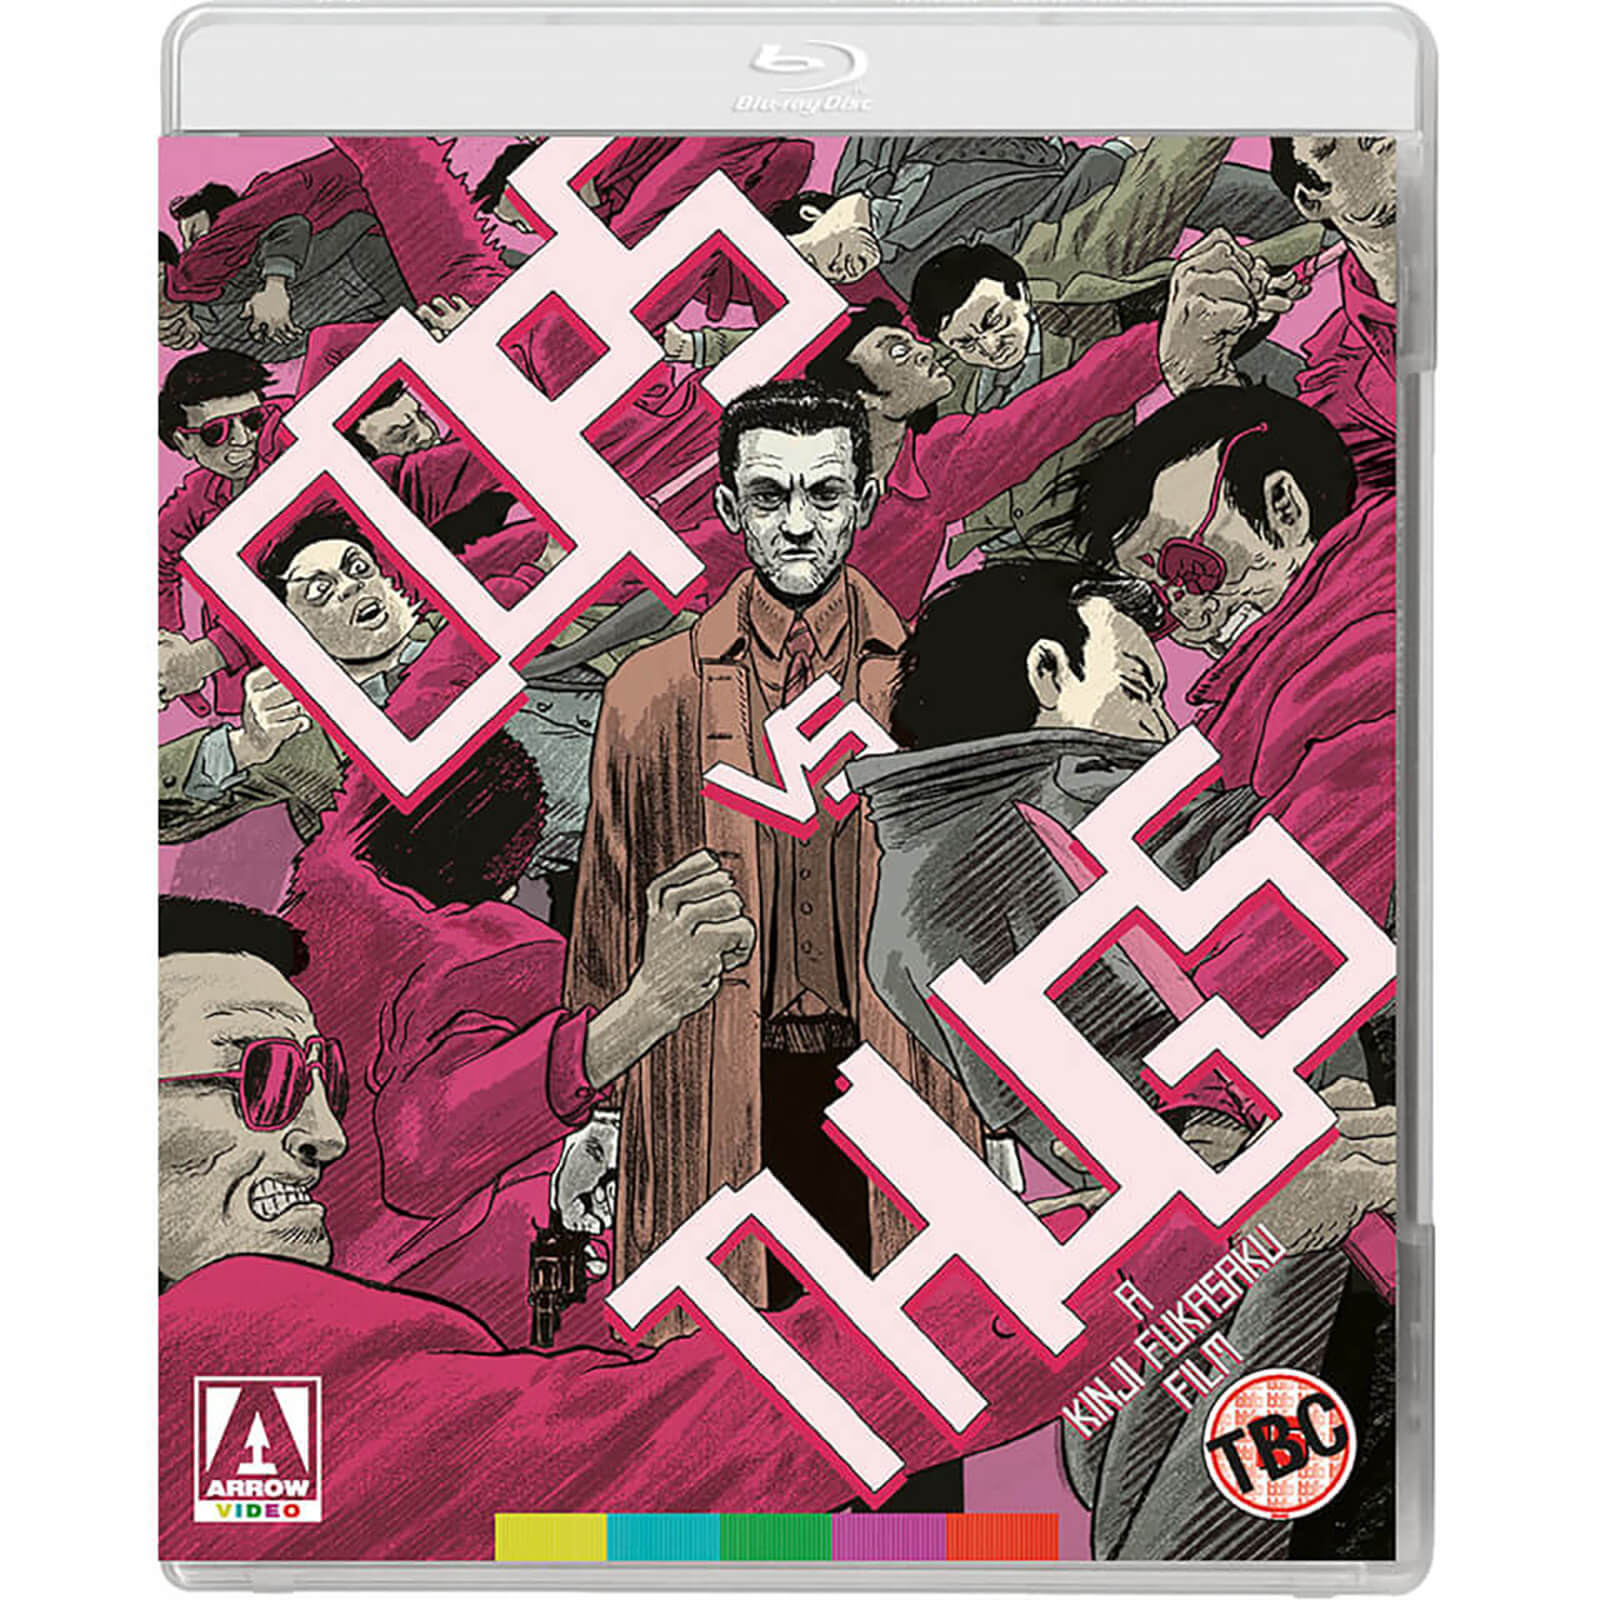 Cops vs Thugs - Dual Format (Includes DVD) von Arrow Video